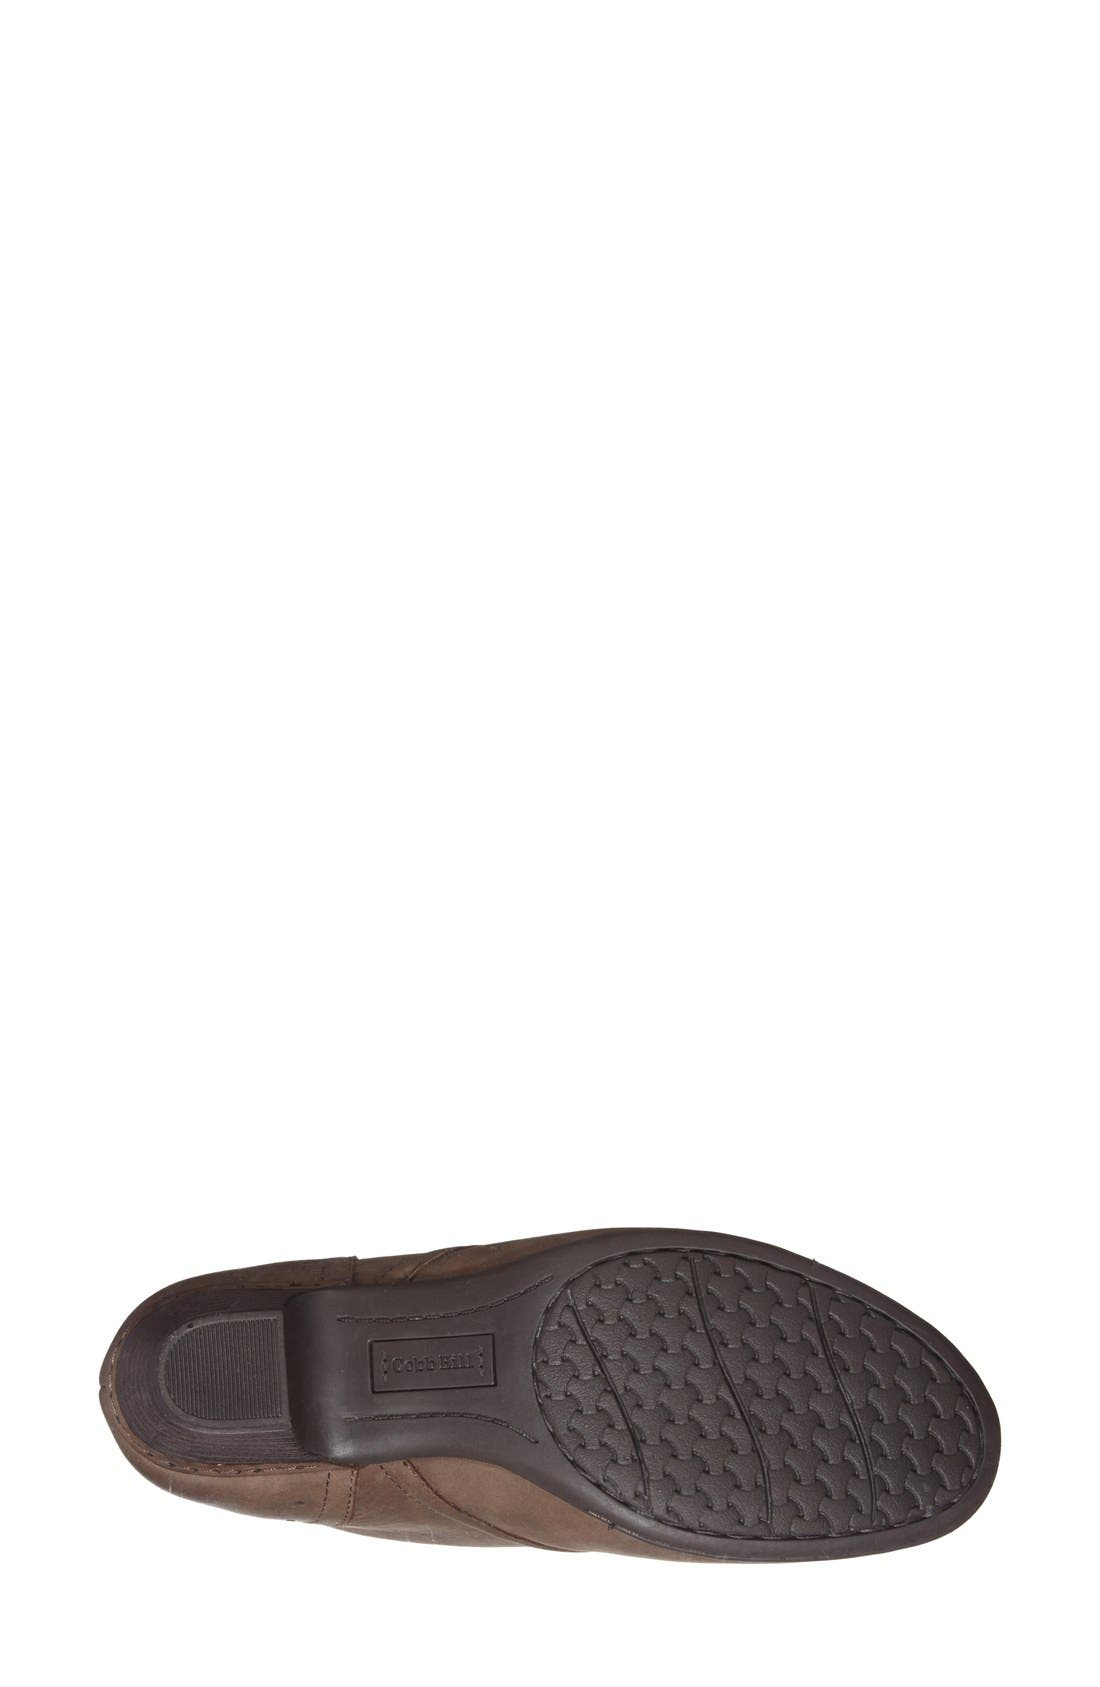 ROCKPORT COBB HILL, Aria Leather Boot, Alternate thumbnail 3, color, STONE